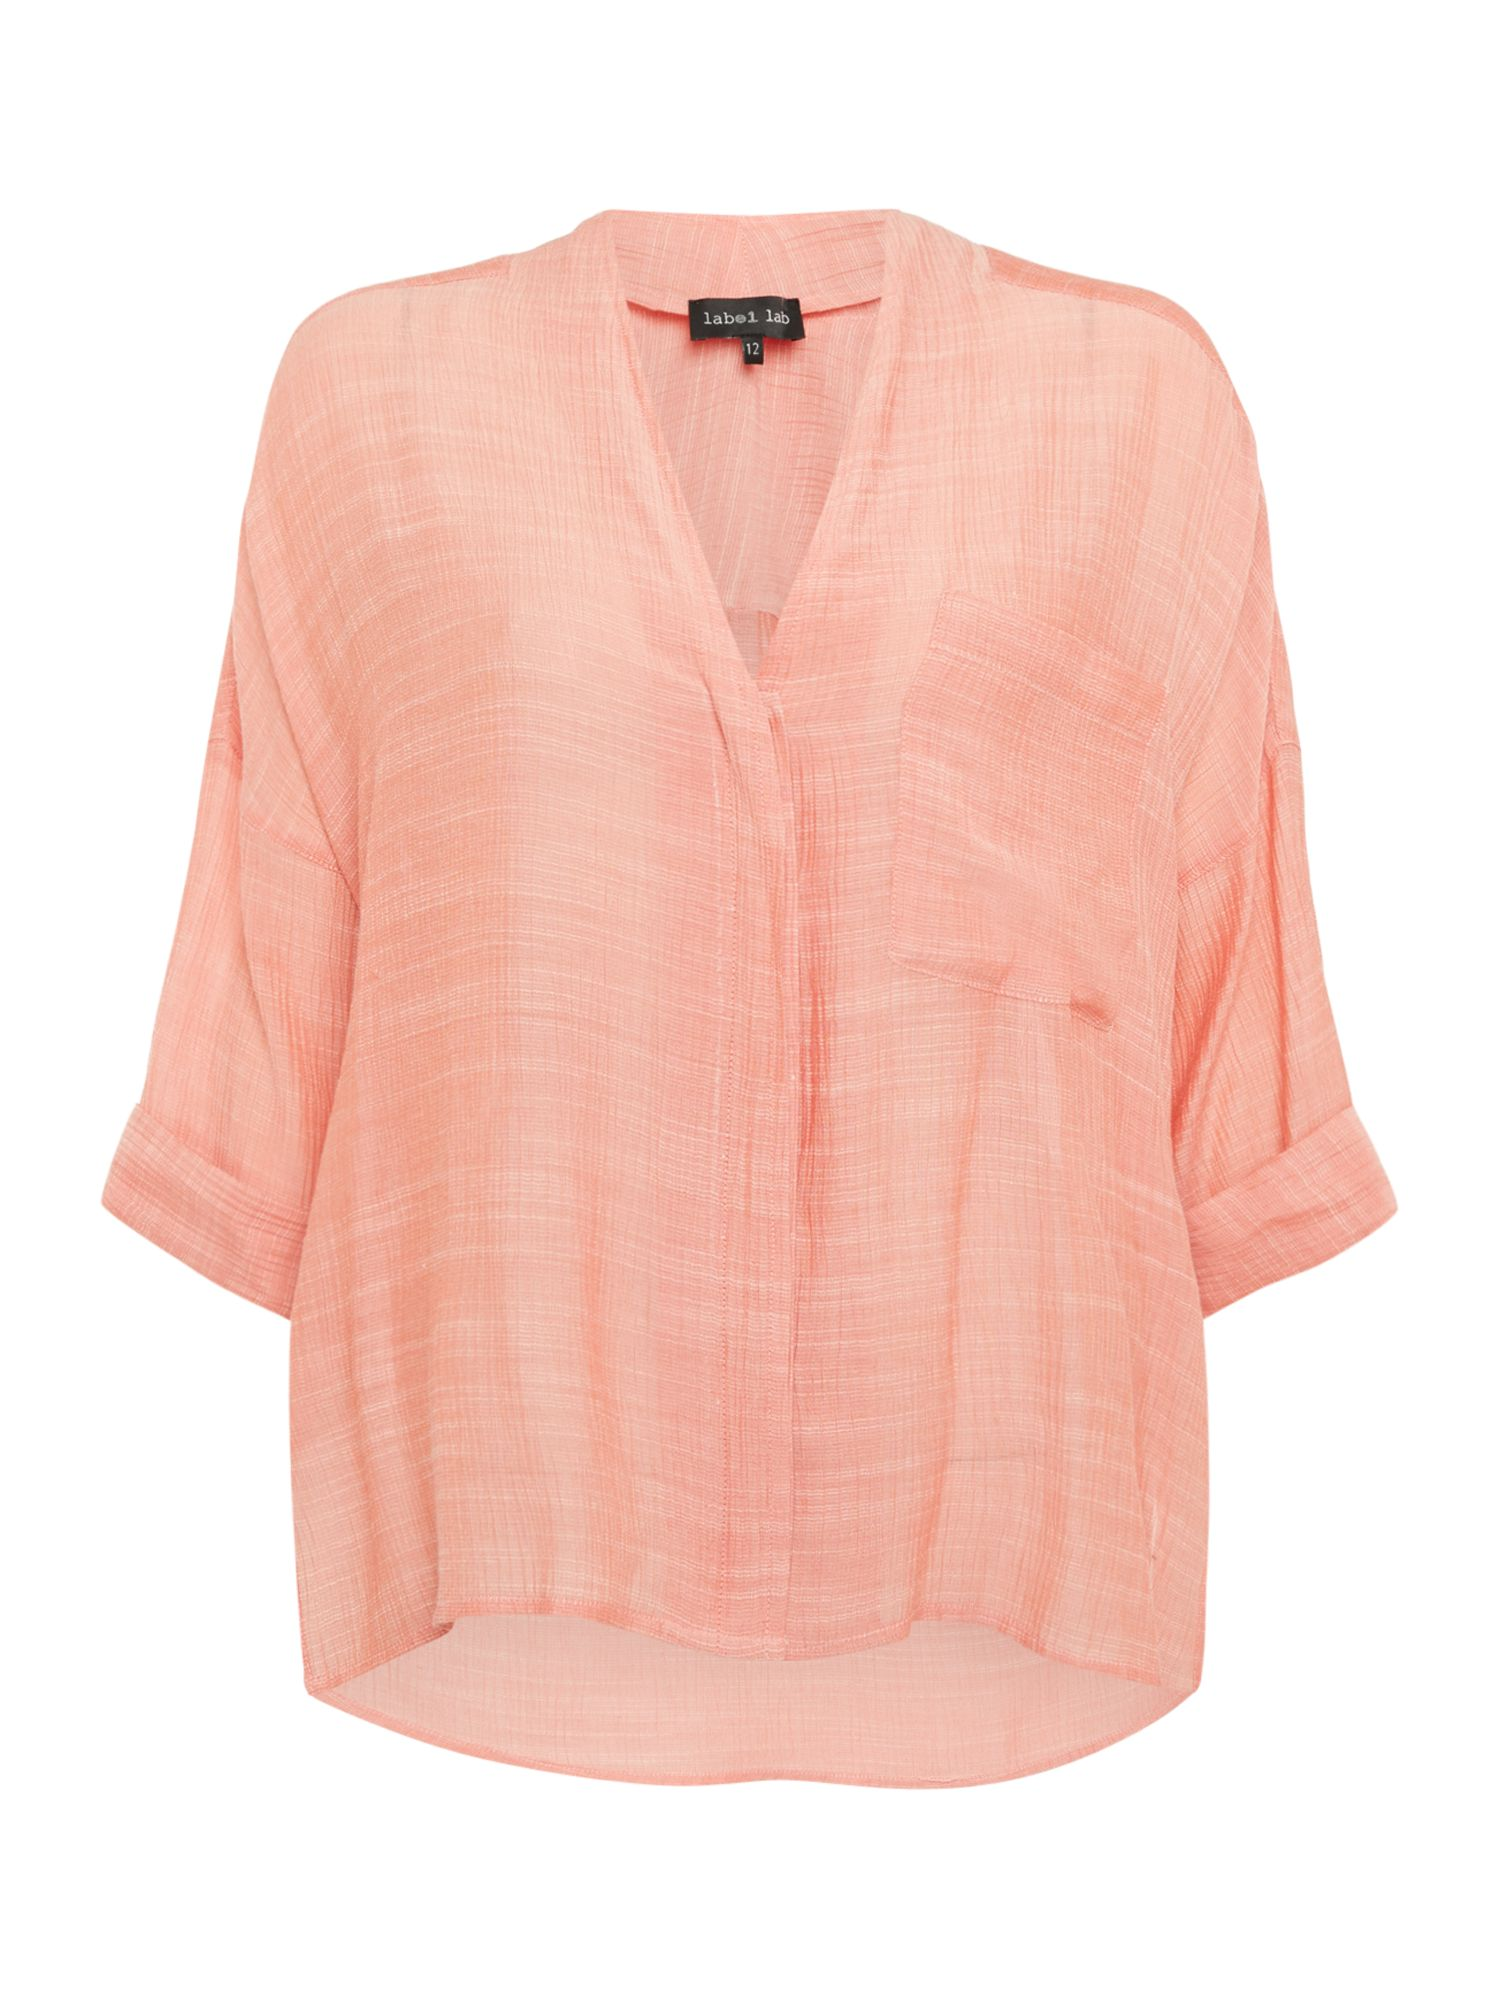 Label Lab Avery button through shirt, Coral